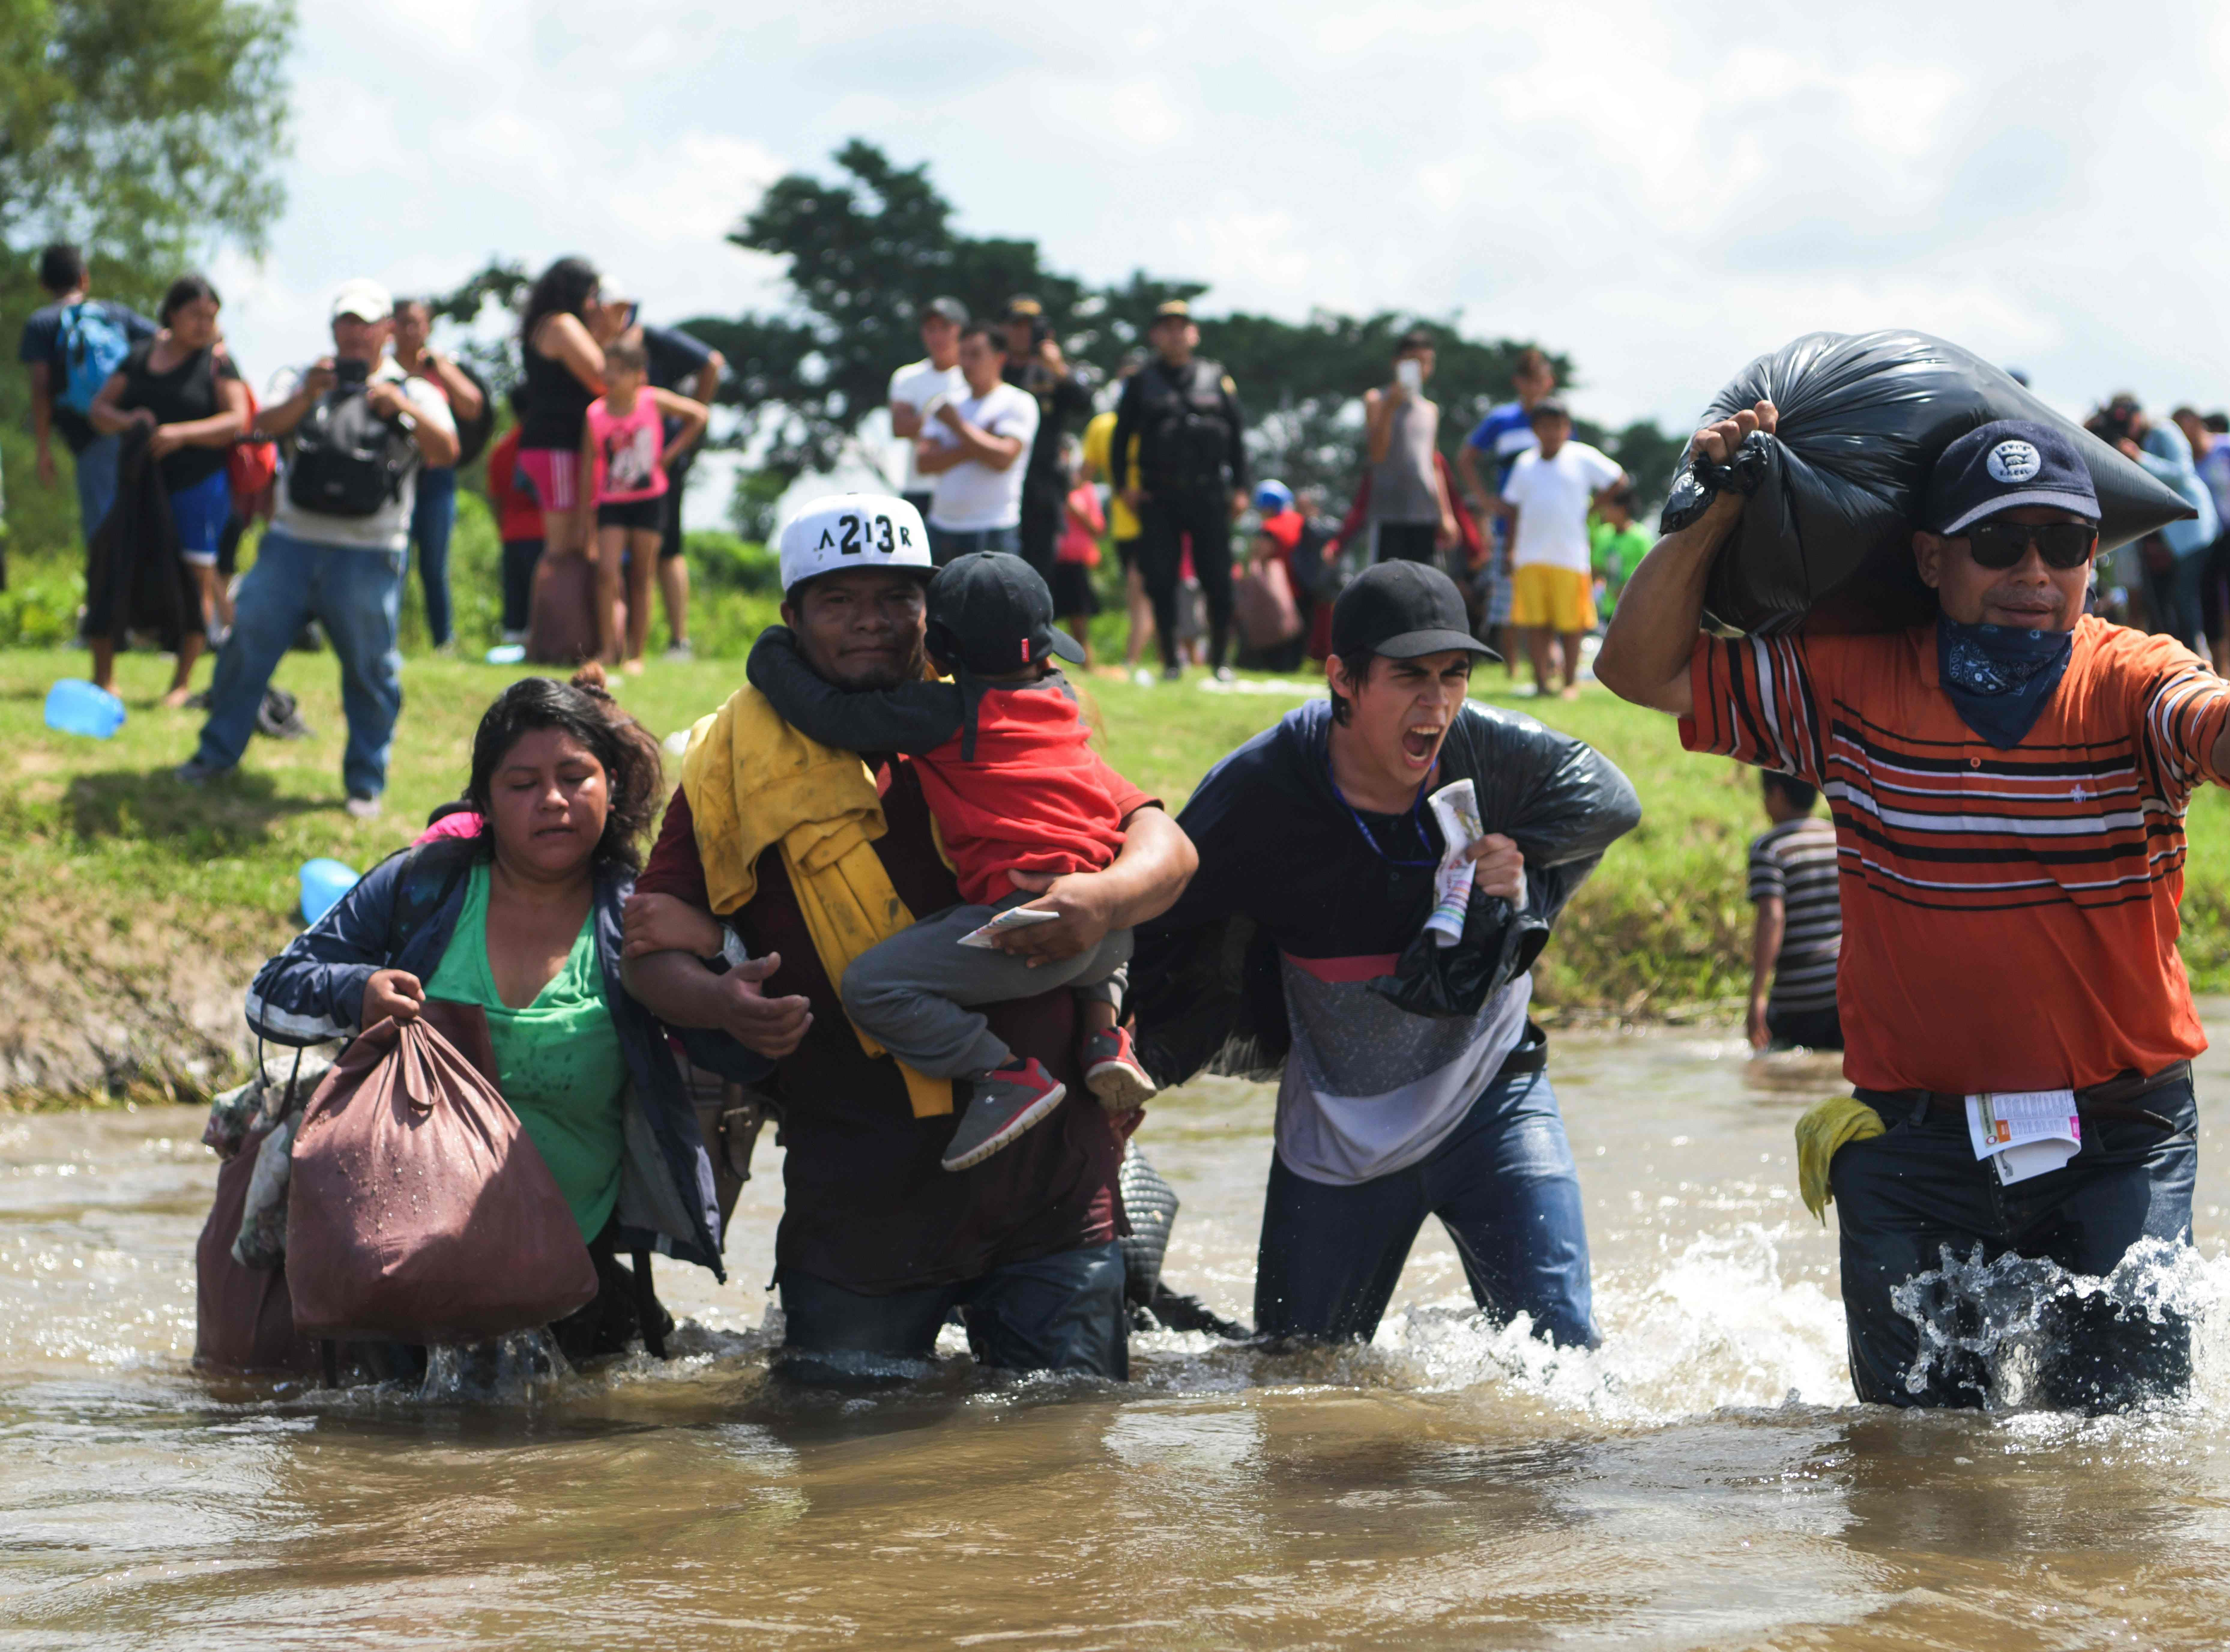 Salvadorian migrants heading in a caravan to the US, cross the Suchiate River to Mexico, as seen from Ciudad Tecun Uman, Guatemala, on Nov. 02, 2018.